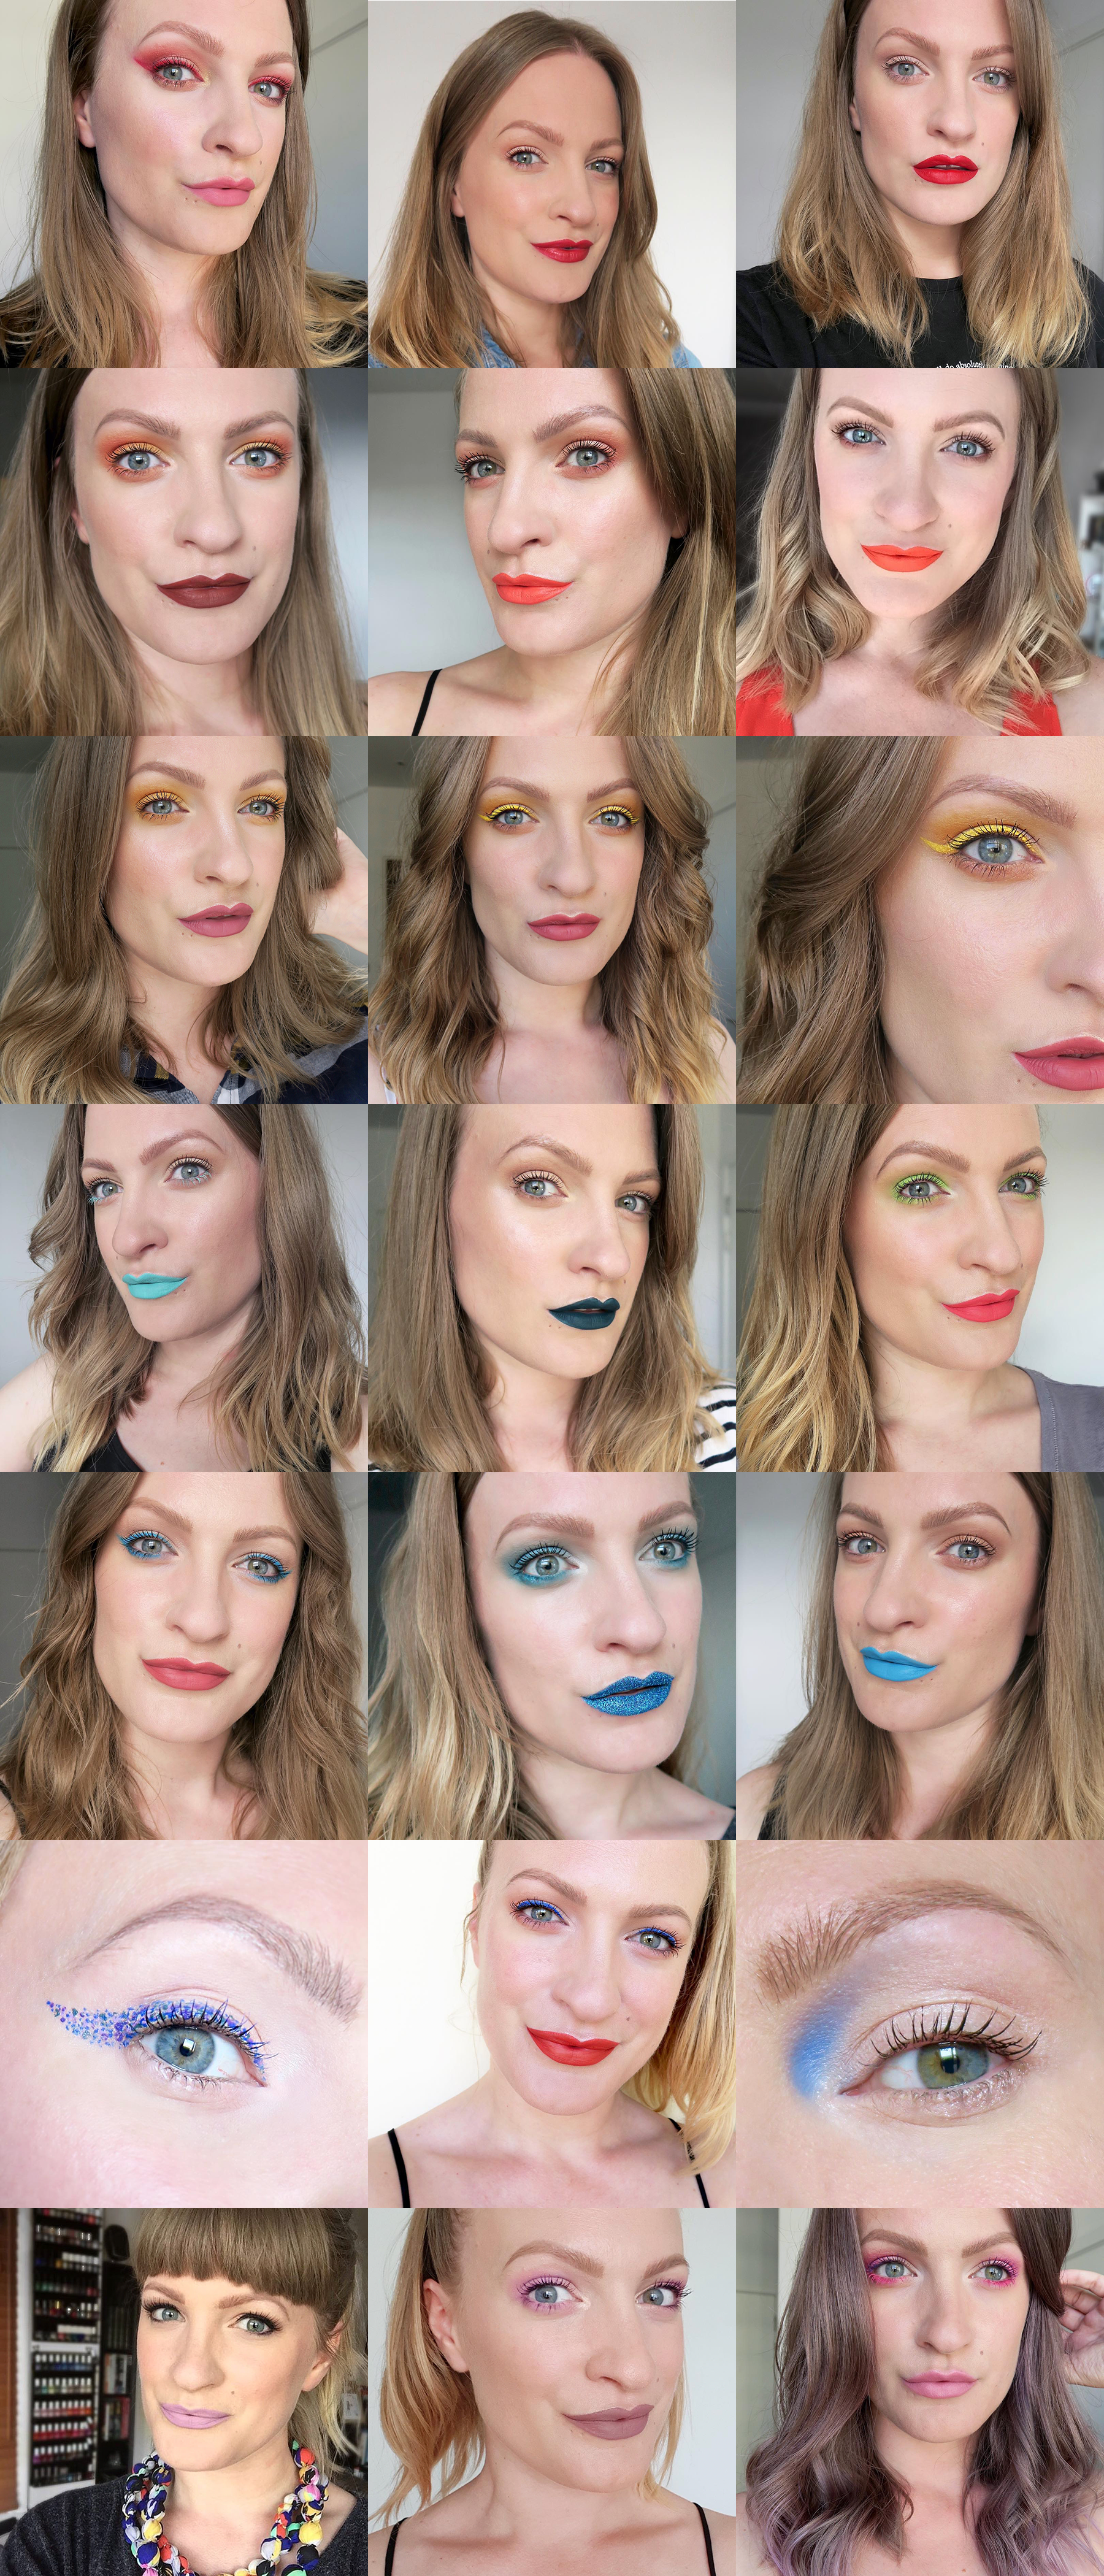 Rainbow make up looks - Talonted Lex